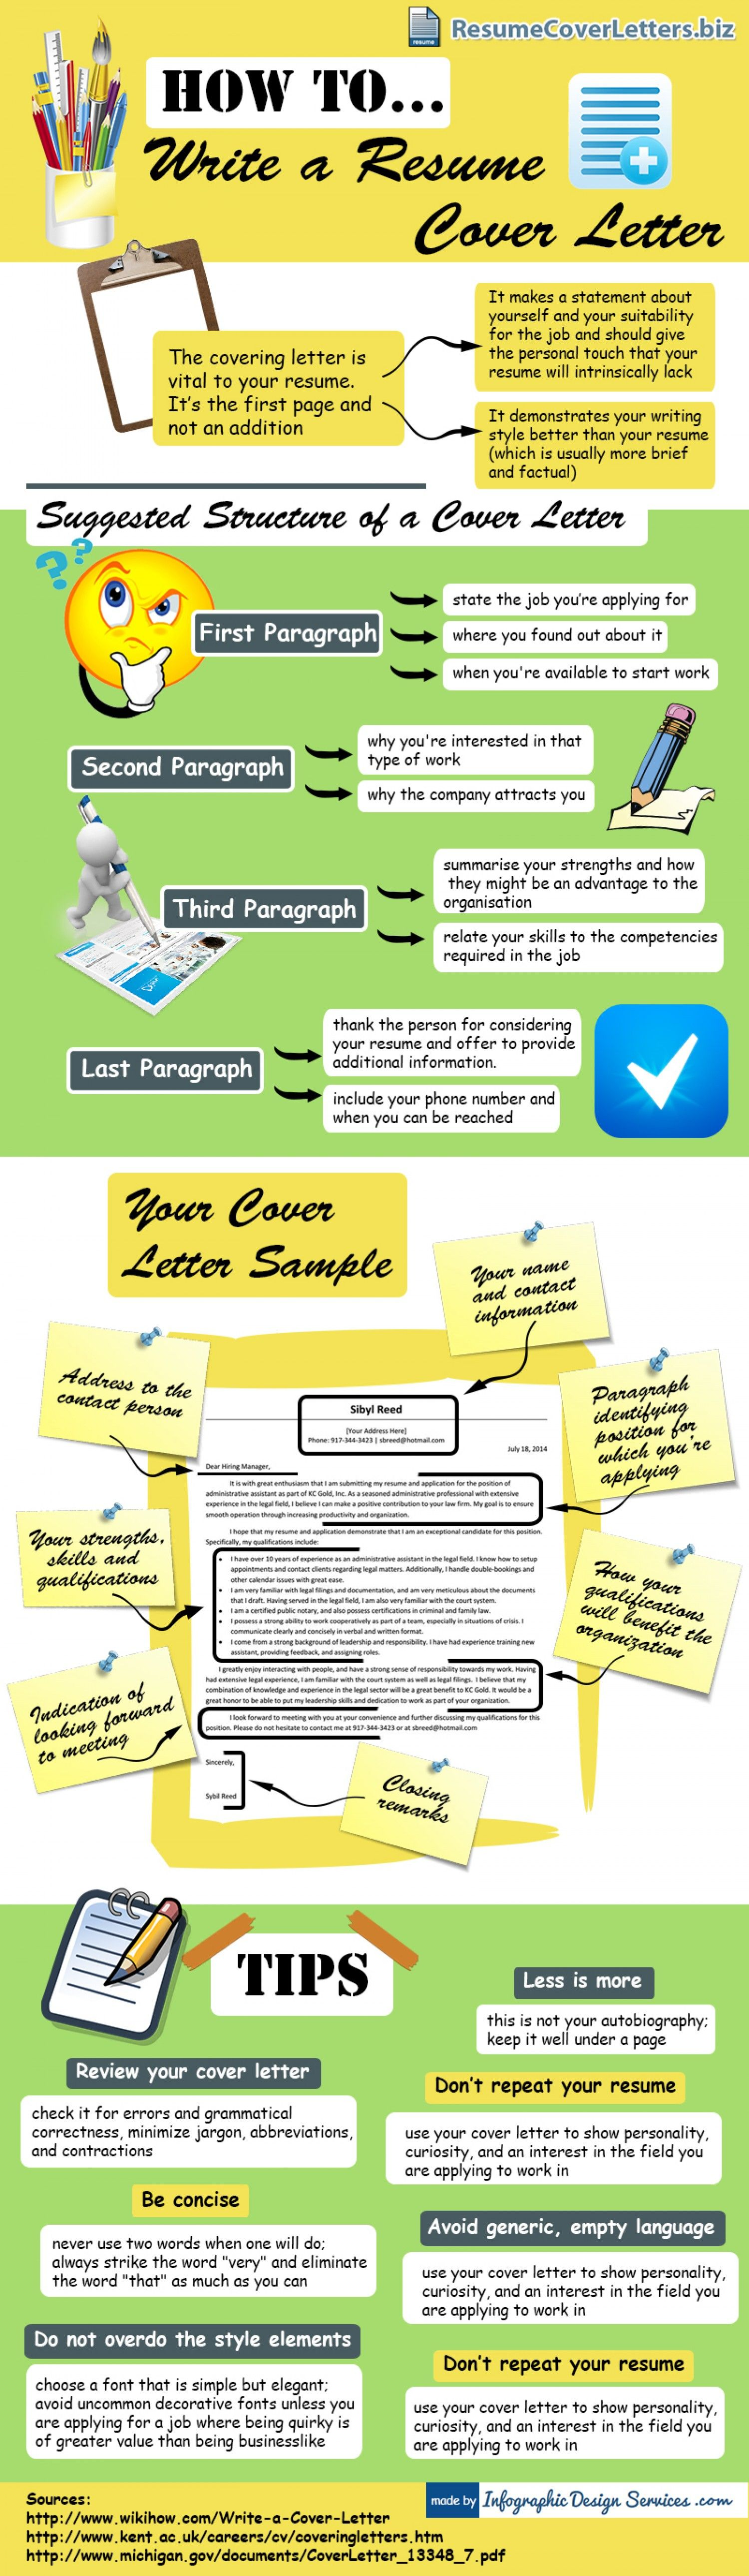 resume cover letter writing tips infographic - What To Write On A Resume Cover Letter